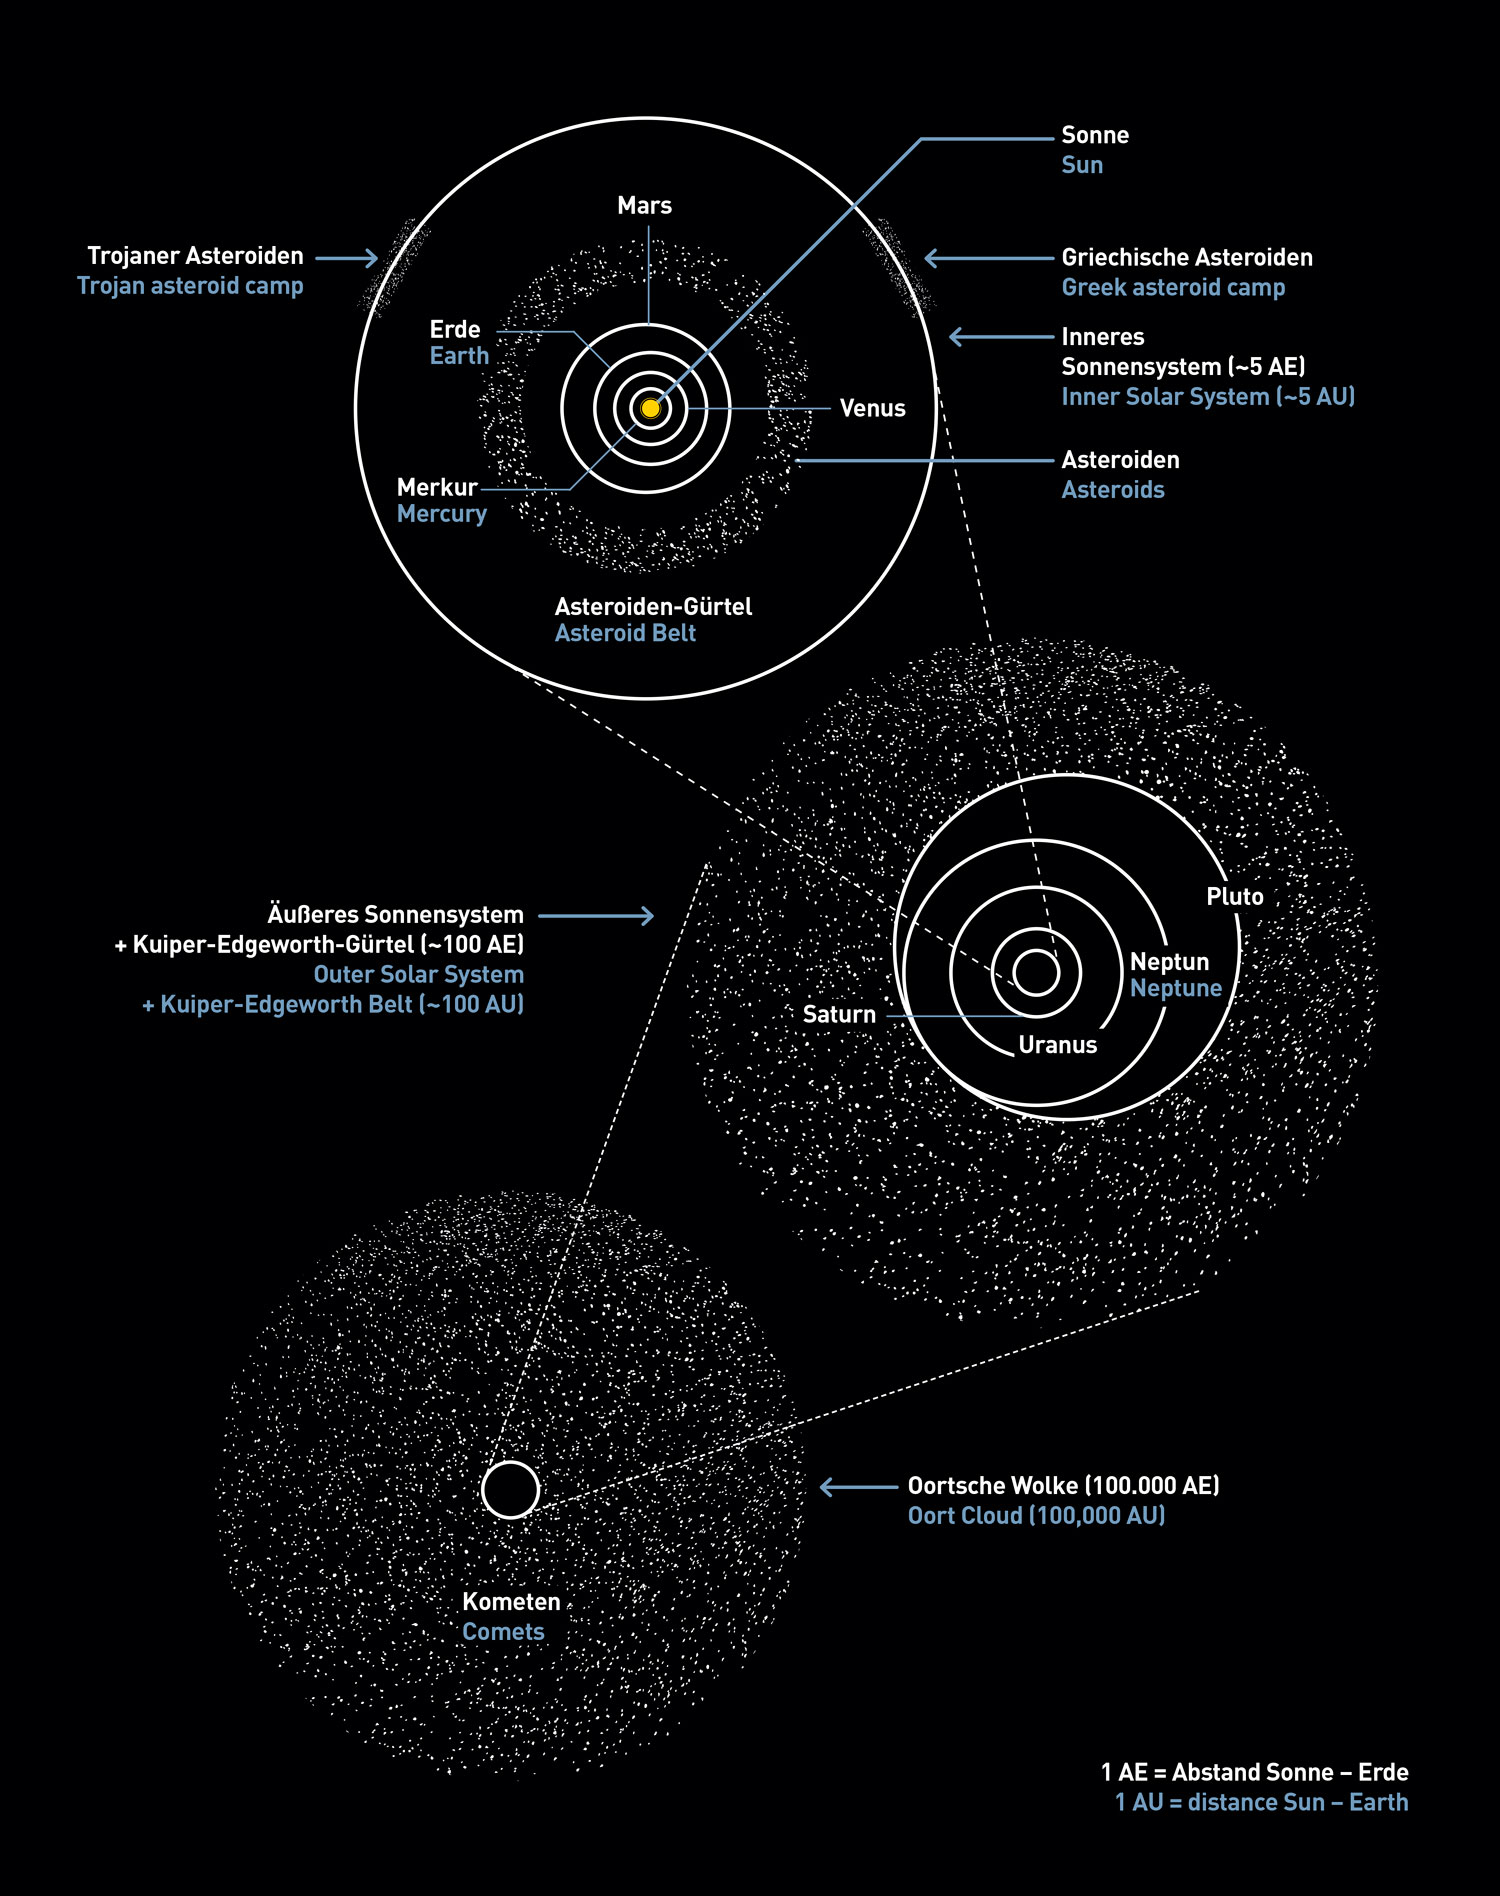 asteroid belt diagram - photo #23